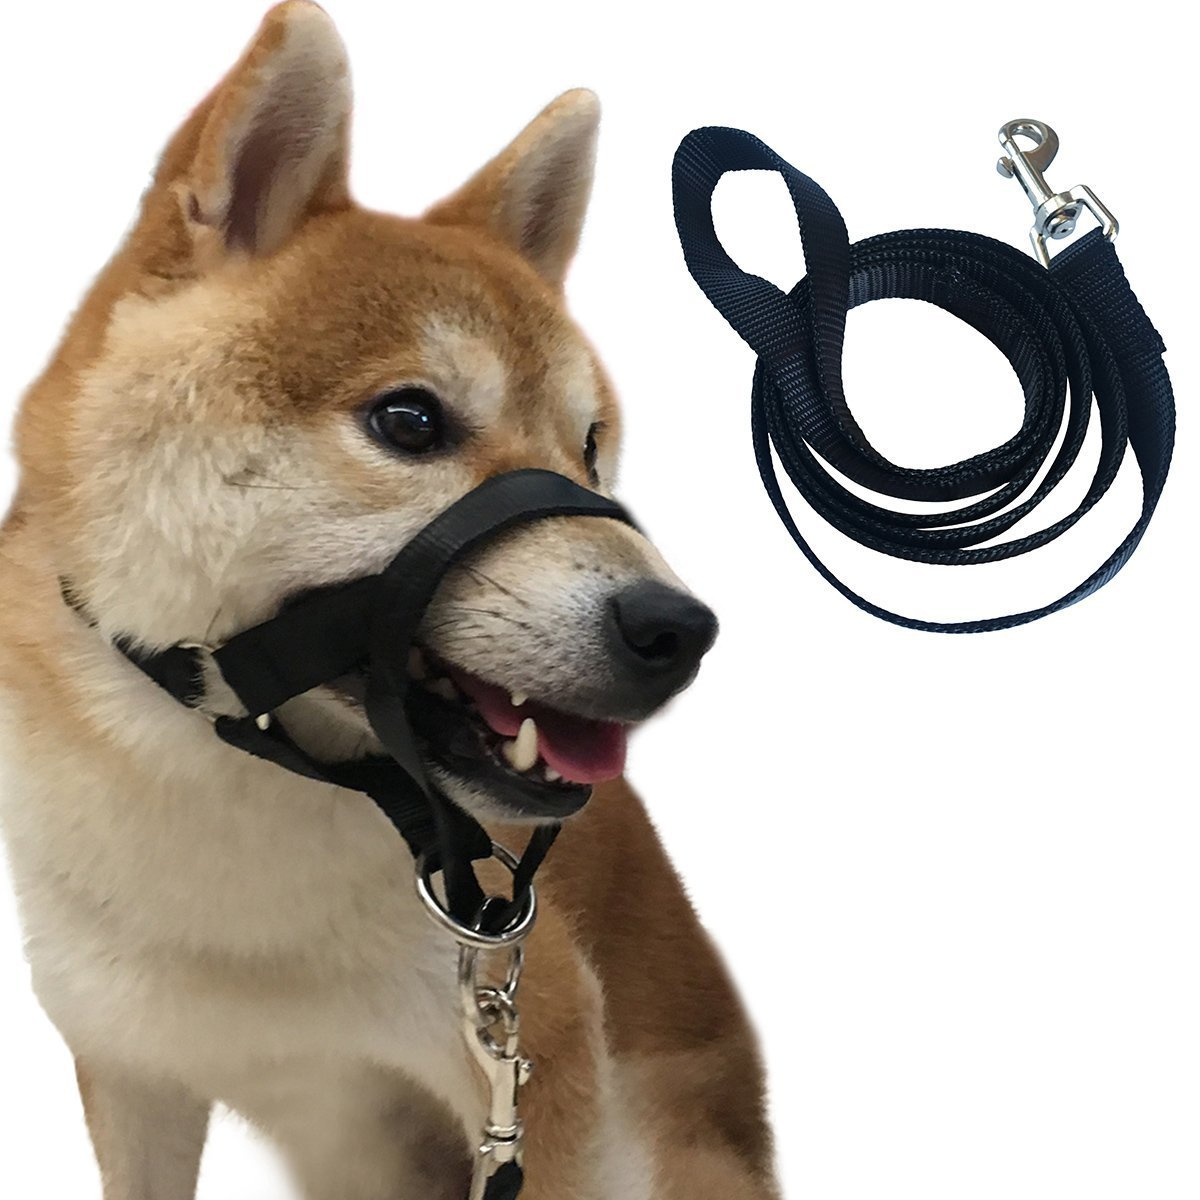 Charmsong Headcollar No Pain No Pull With Leash Breed Halter Painless Gentle Control Training Collars Black (M)